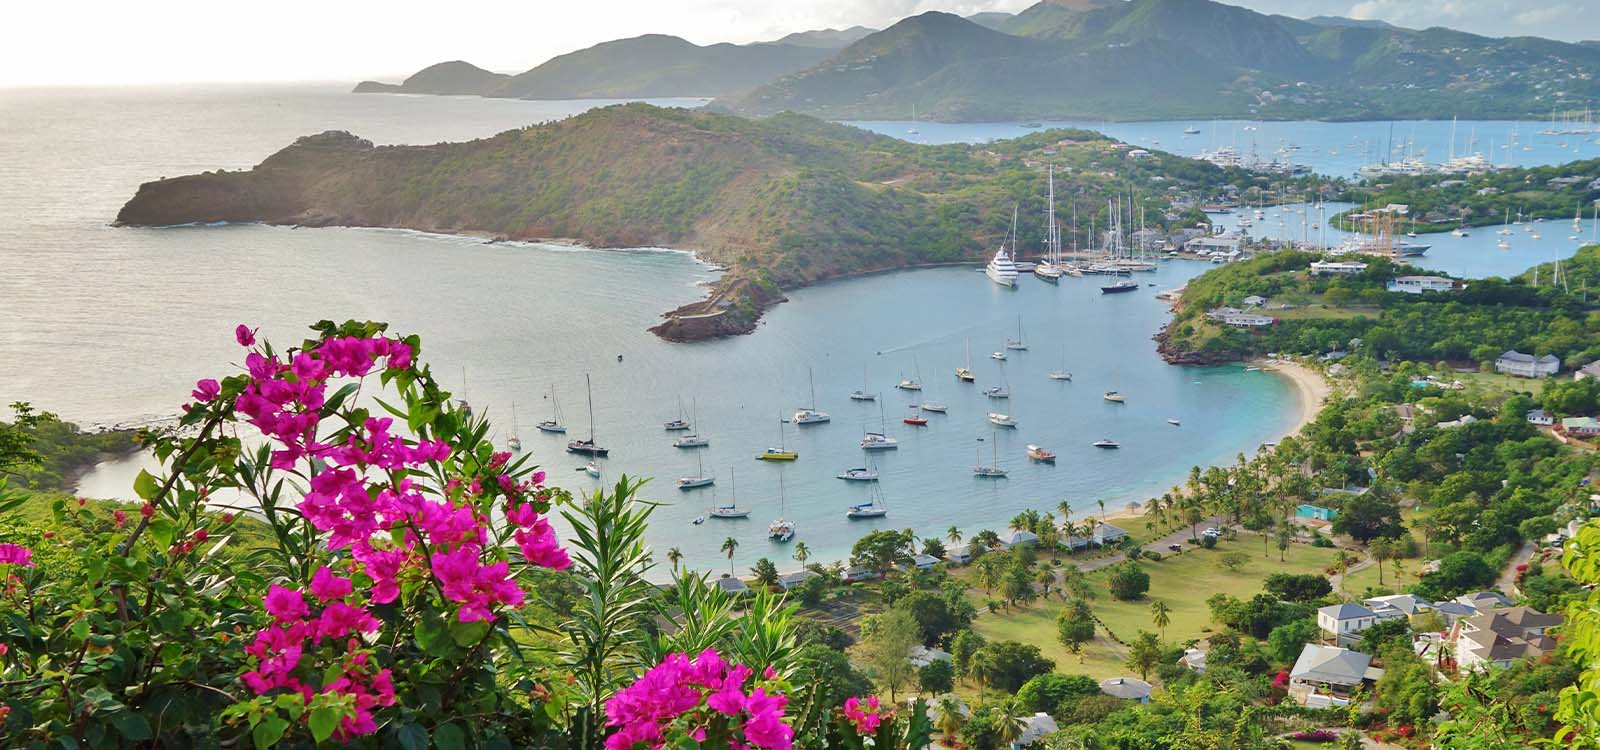 Antigua & Barbuda is an island of unique beauty, with its white-sand beaches, tropical vegetation & rich cultural heritage.